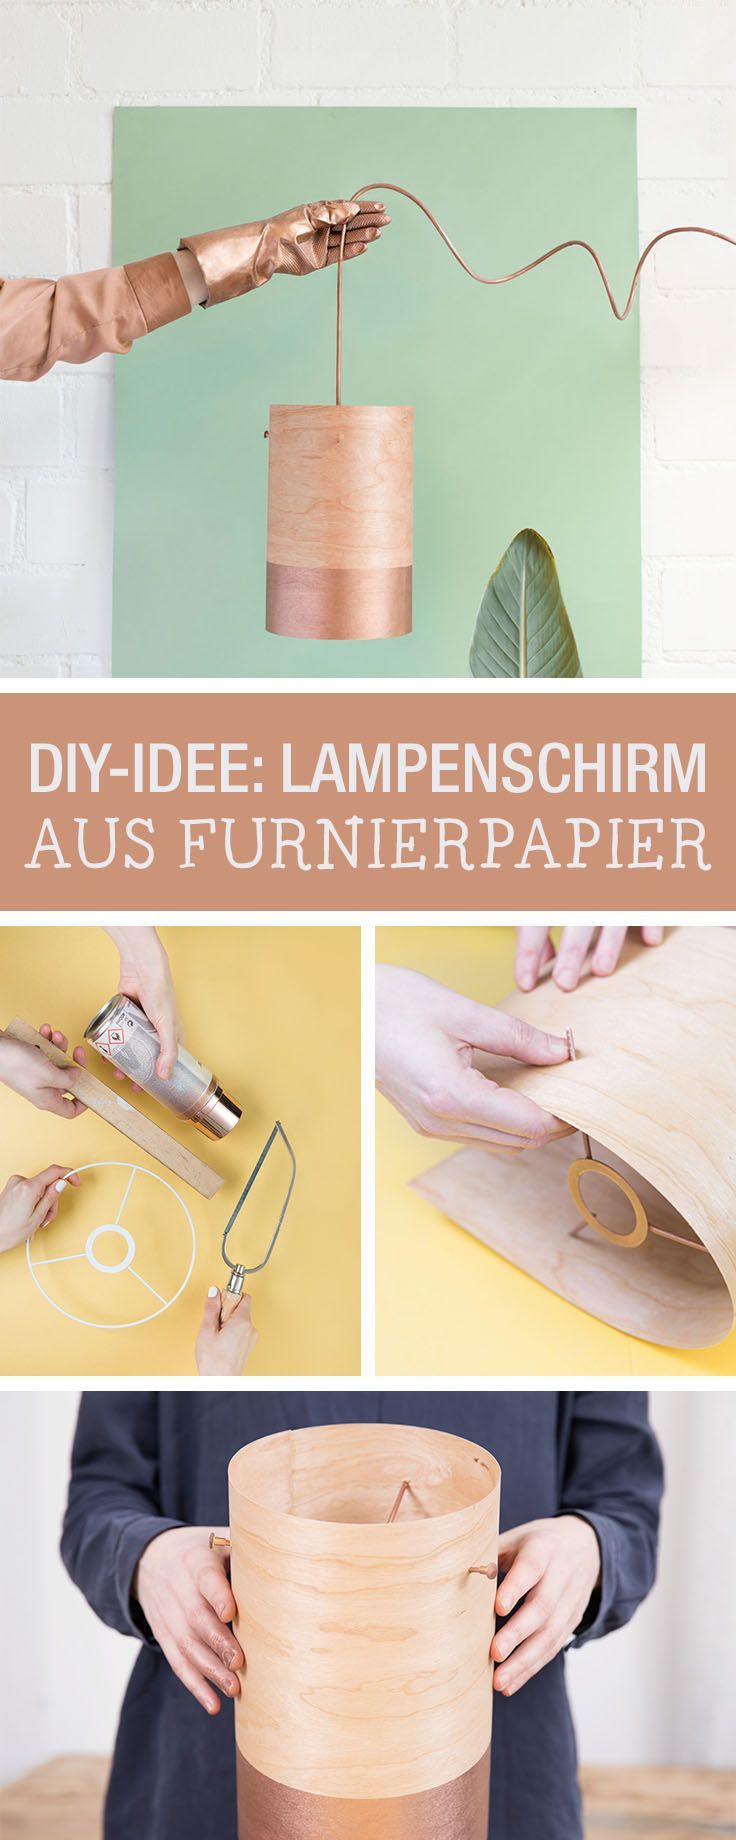 DIY-Anleitung: Lampenschirm aus Furnierpapier basteln, natürliche Wohndeko für Dein zu Hause / DIY tutorial: crafting a lampshade out of veneer paper as a natural home decor via DaWanda.com